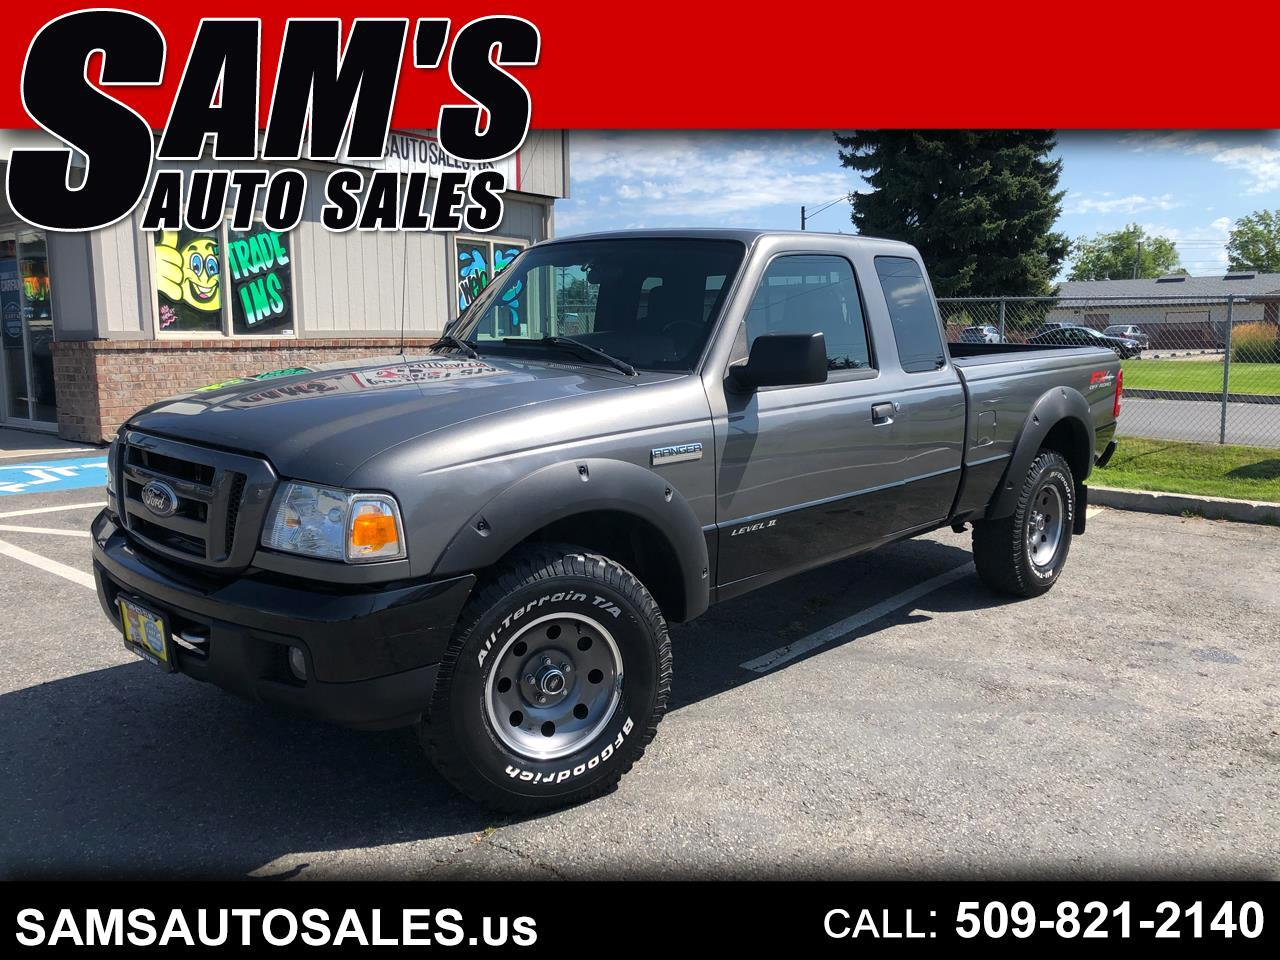 "2007 Ford Ranger 4dr Supercab 126"" WB FX4 Lvl II 4WD"